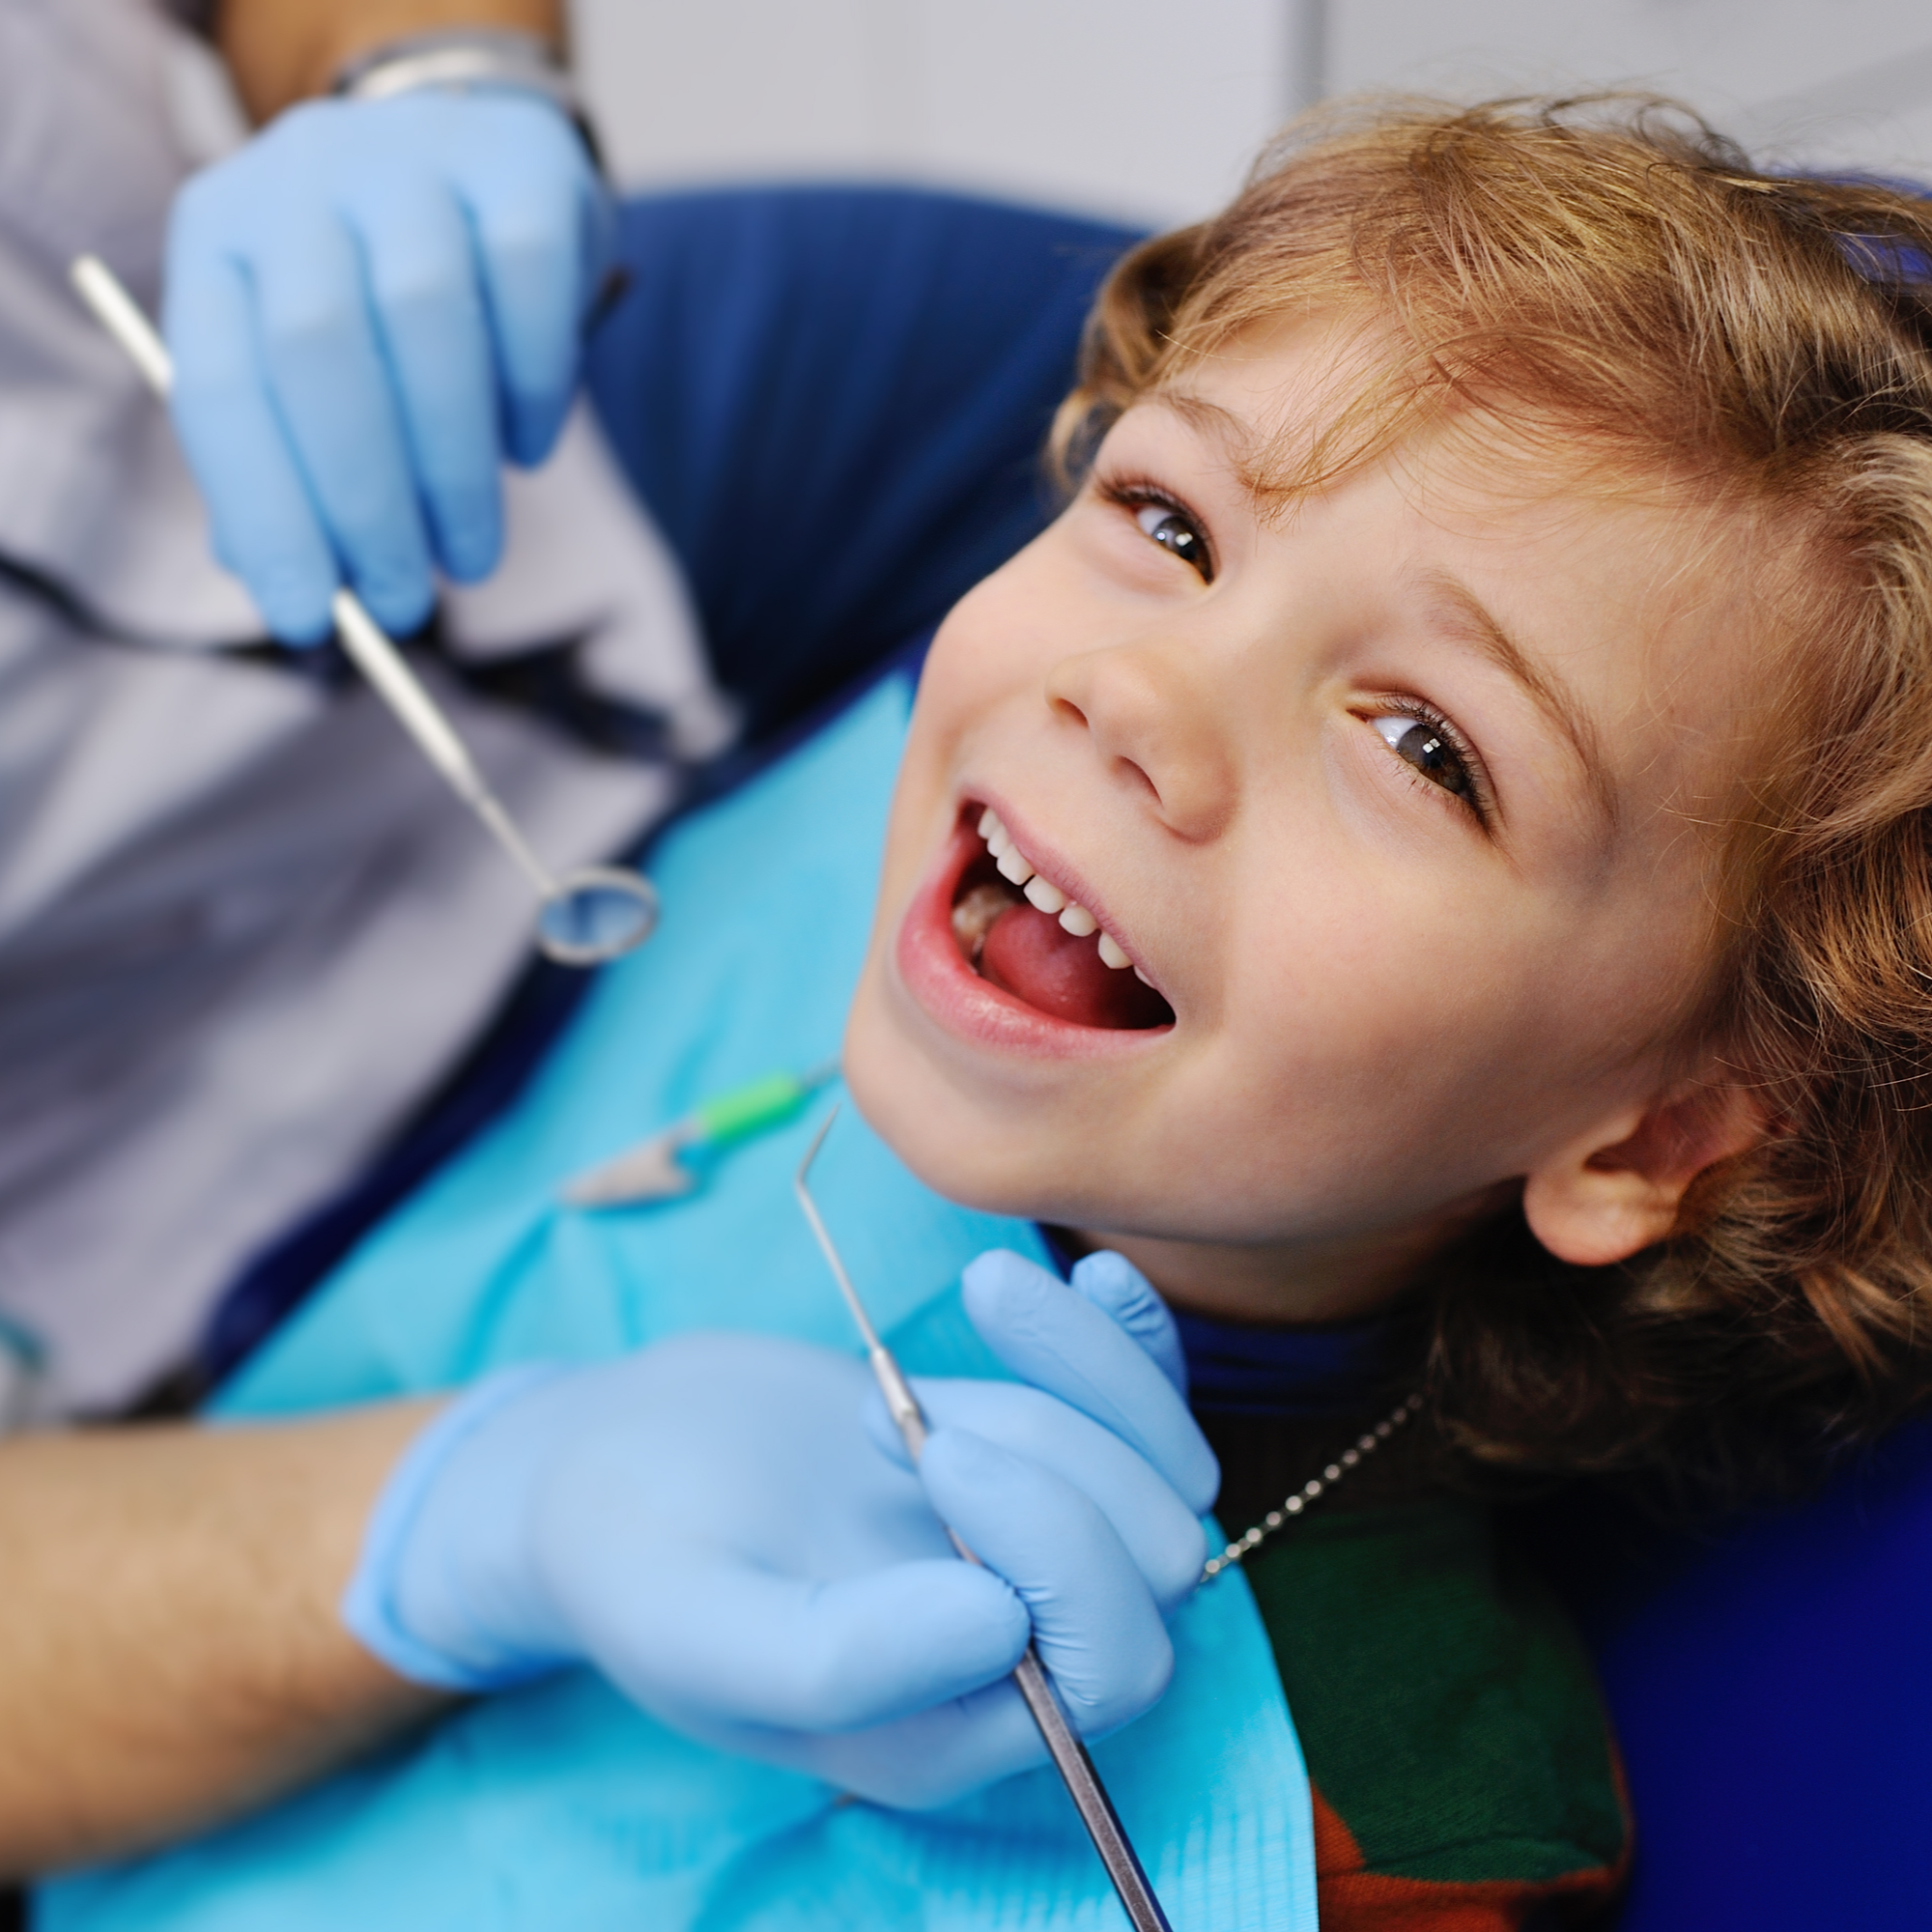 When Should My Baby See a Dentist for the First Time?